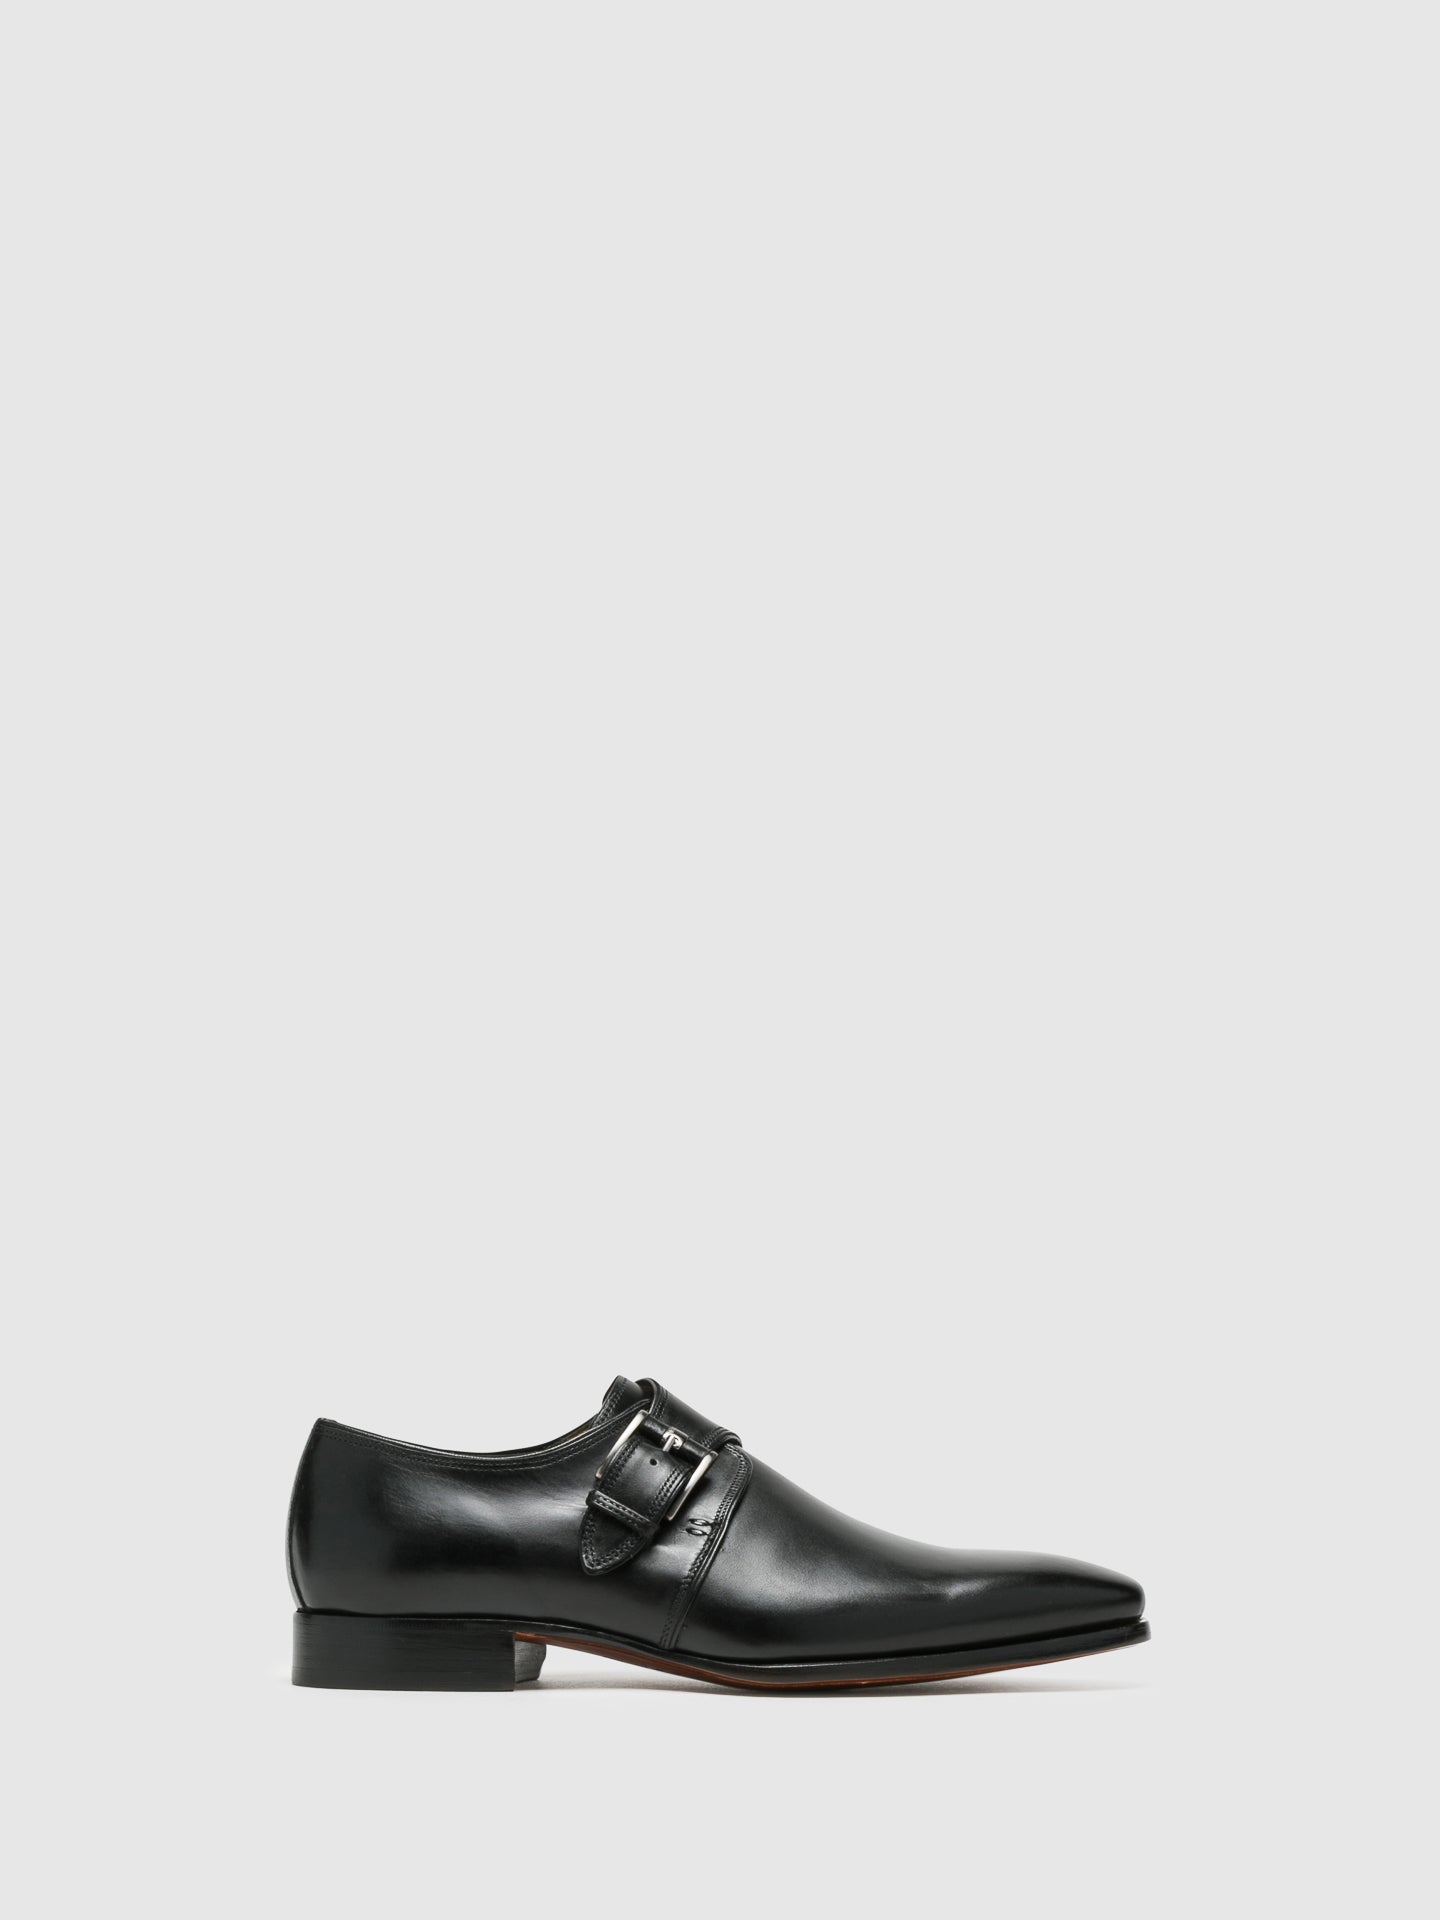 Armando Silva Black Monk Shoes